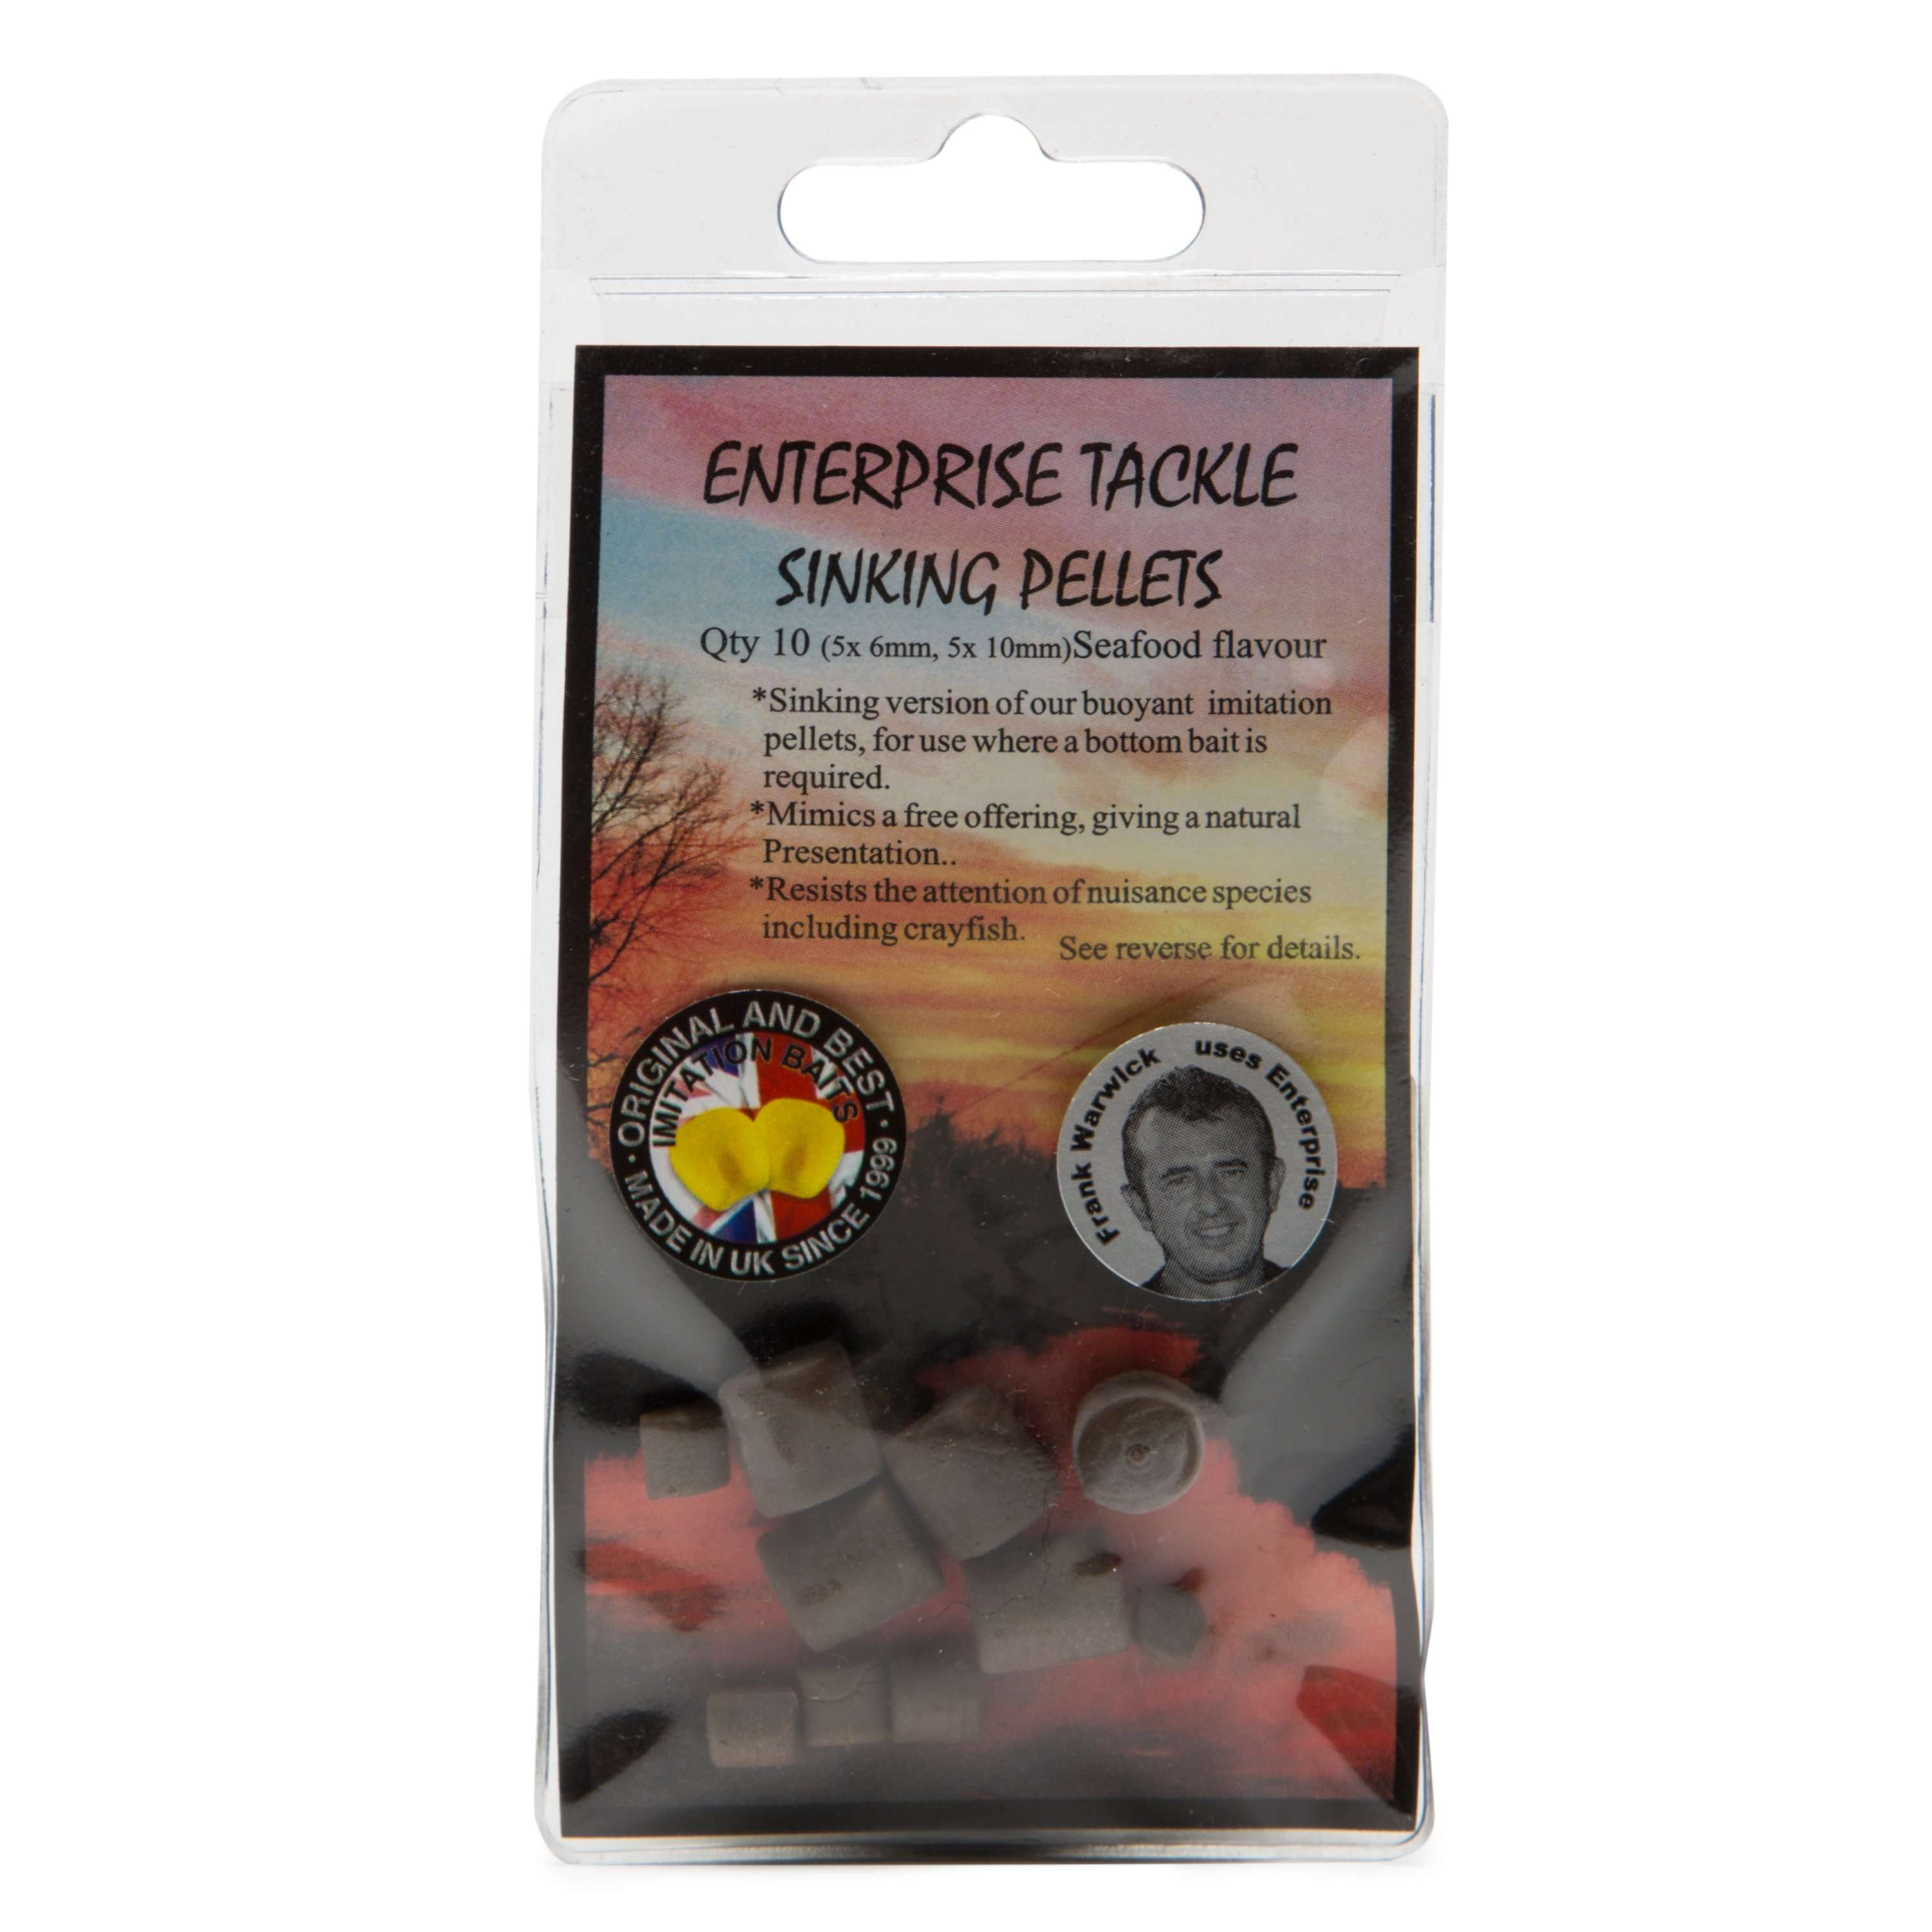 ENTERPRISE TACK Sinking Pellets